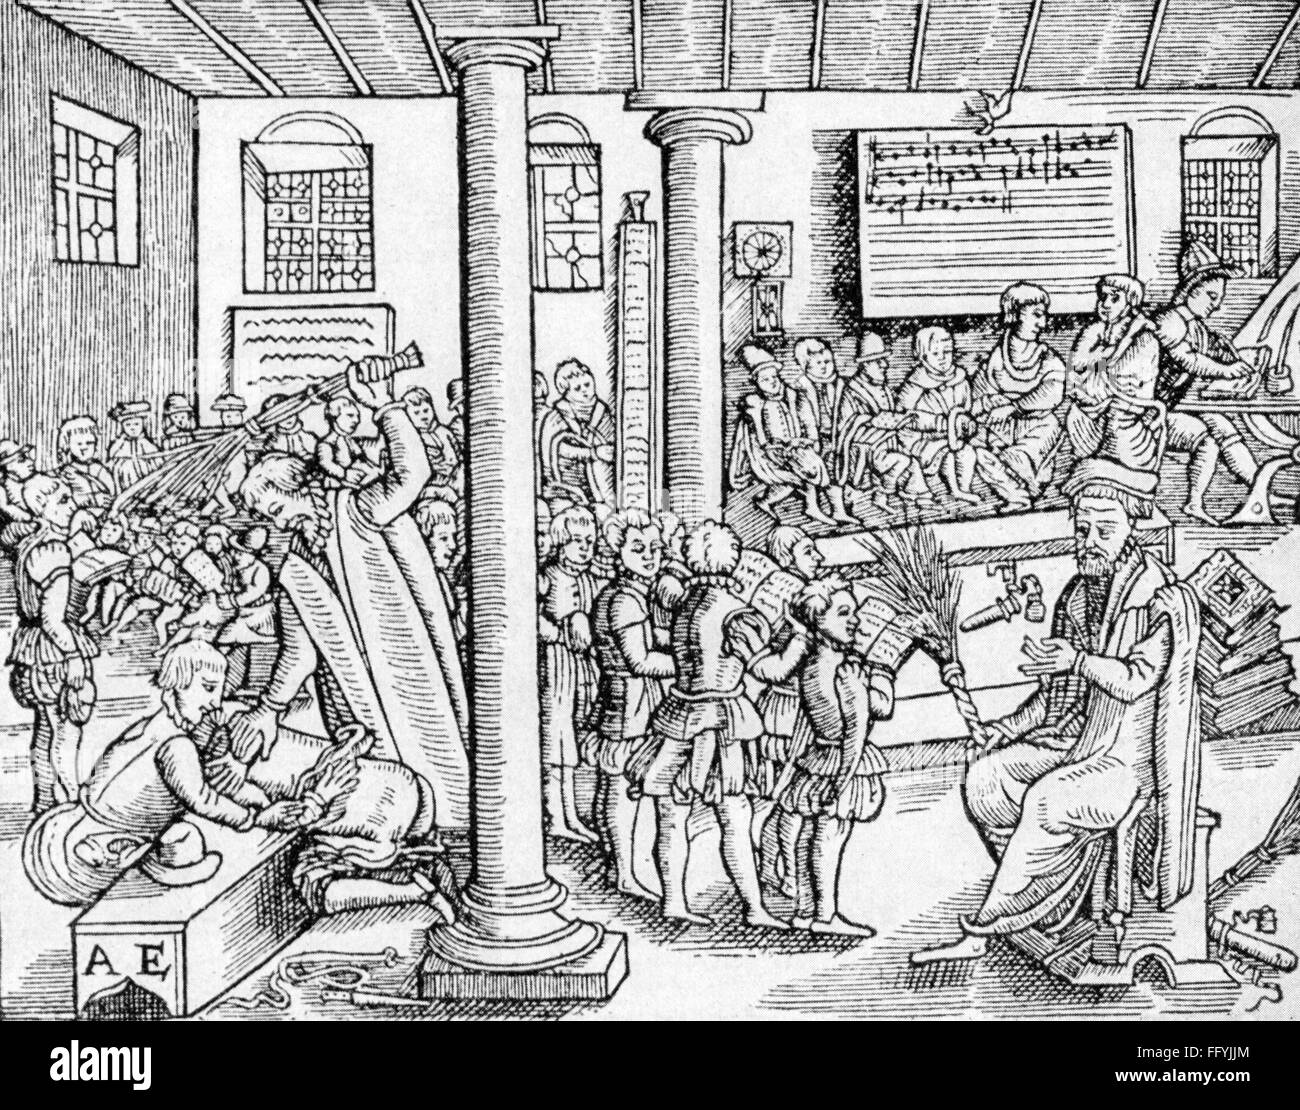 pedagogy, school / lessons / discipline, school scene, woodcut by master AE, second half 16th century, 16th century, - Stock Image